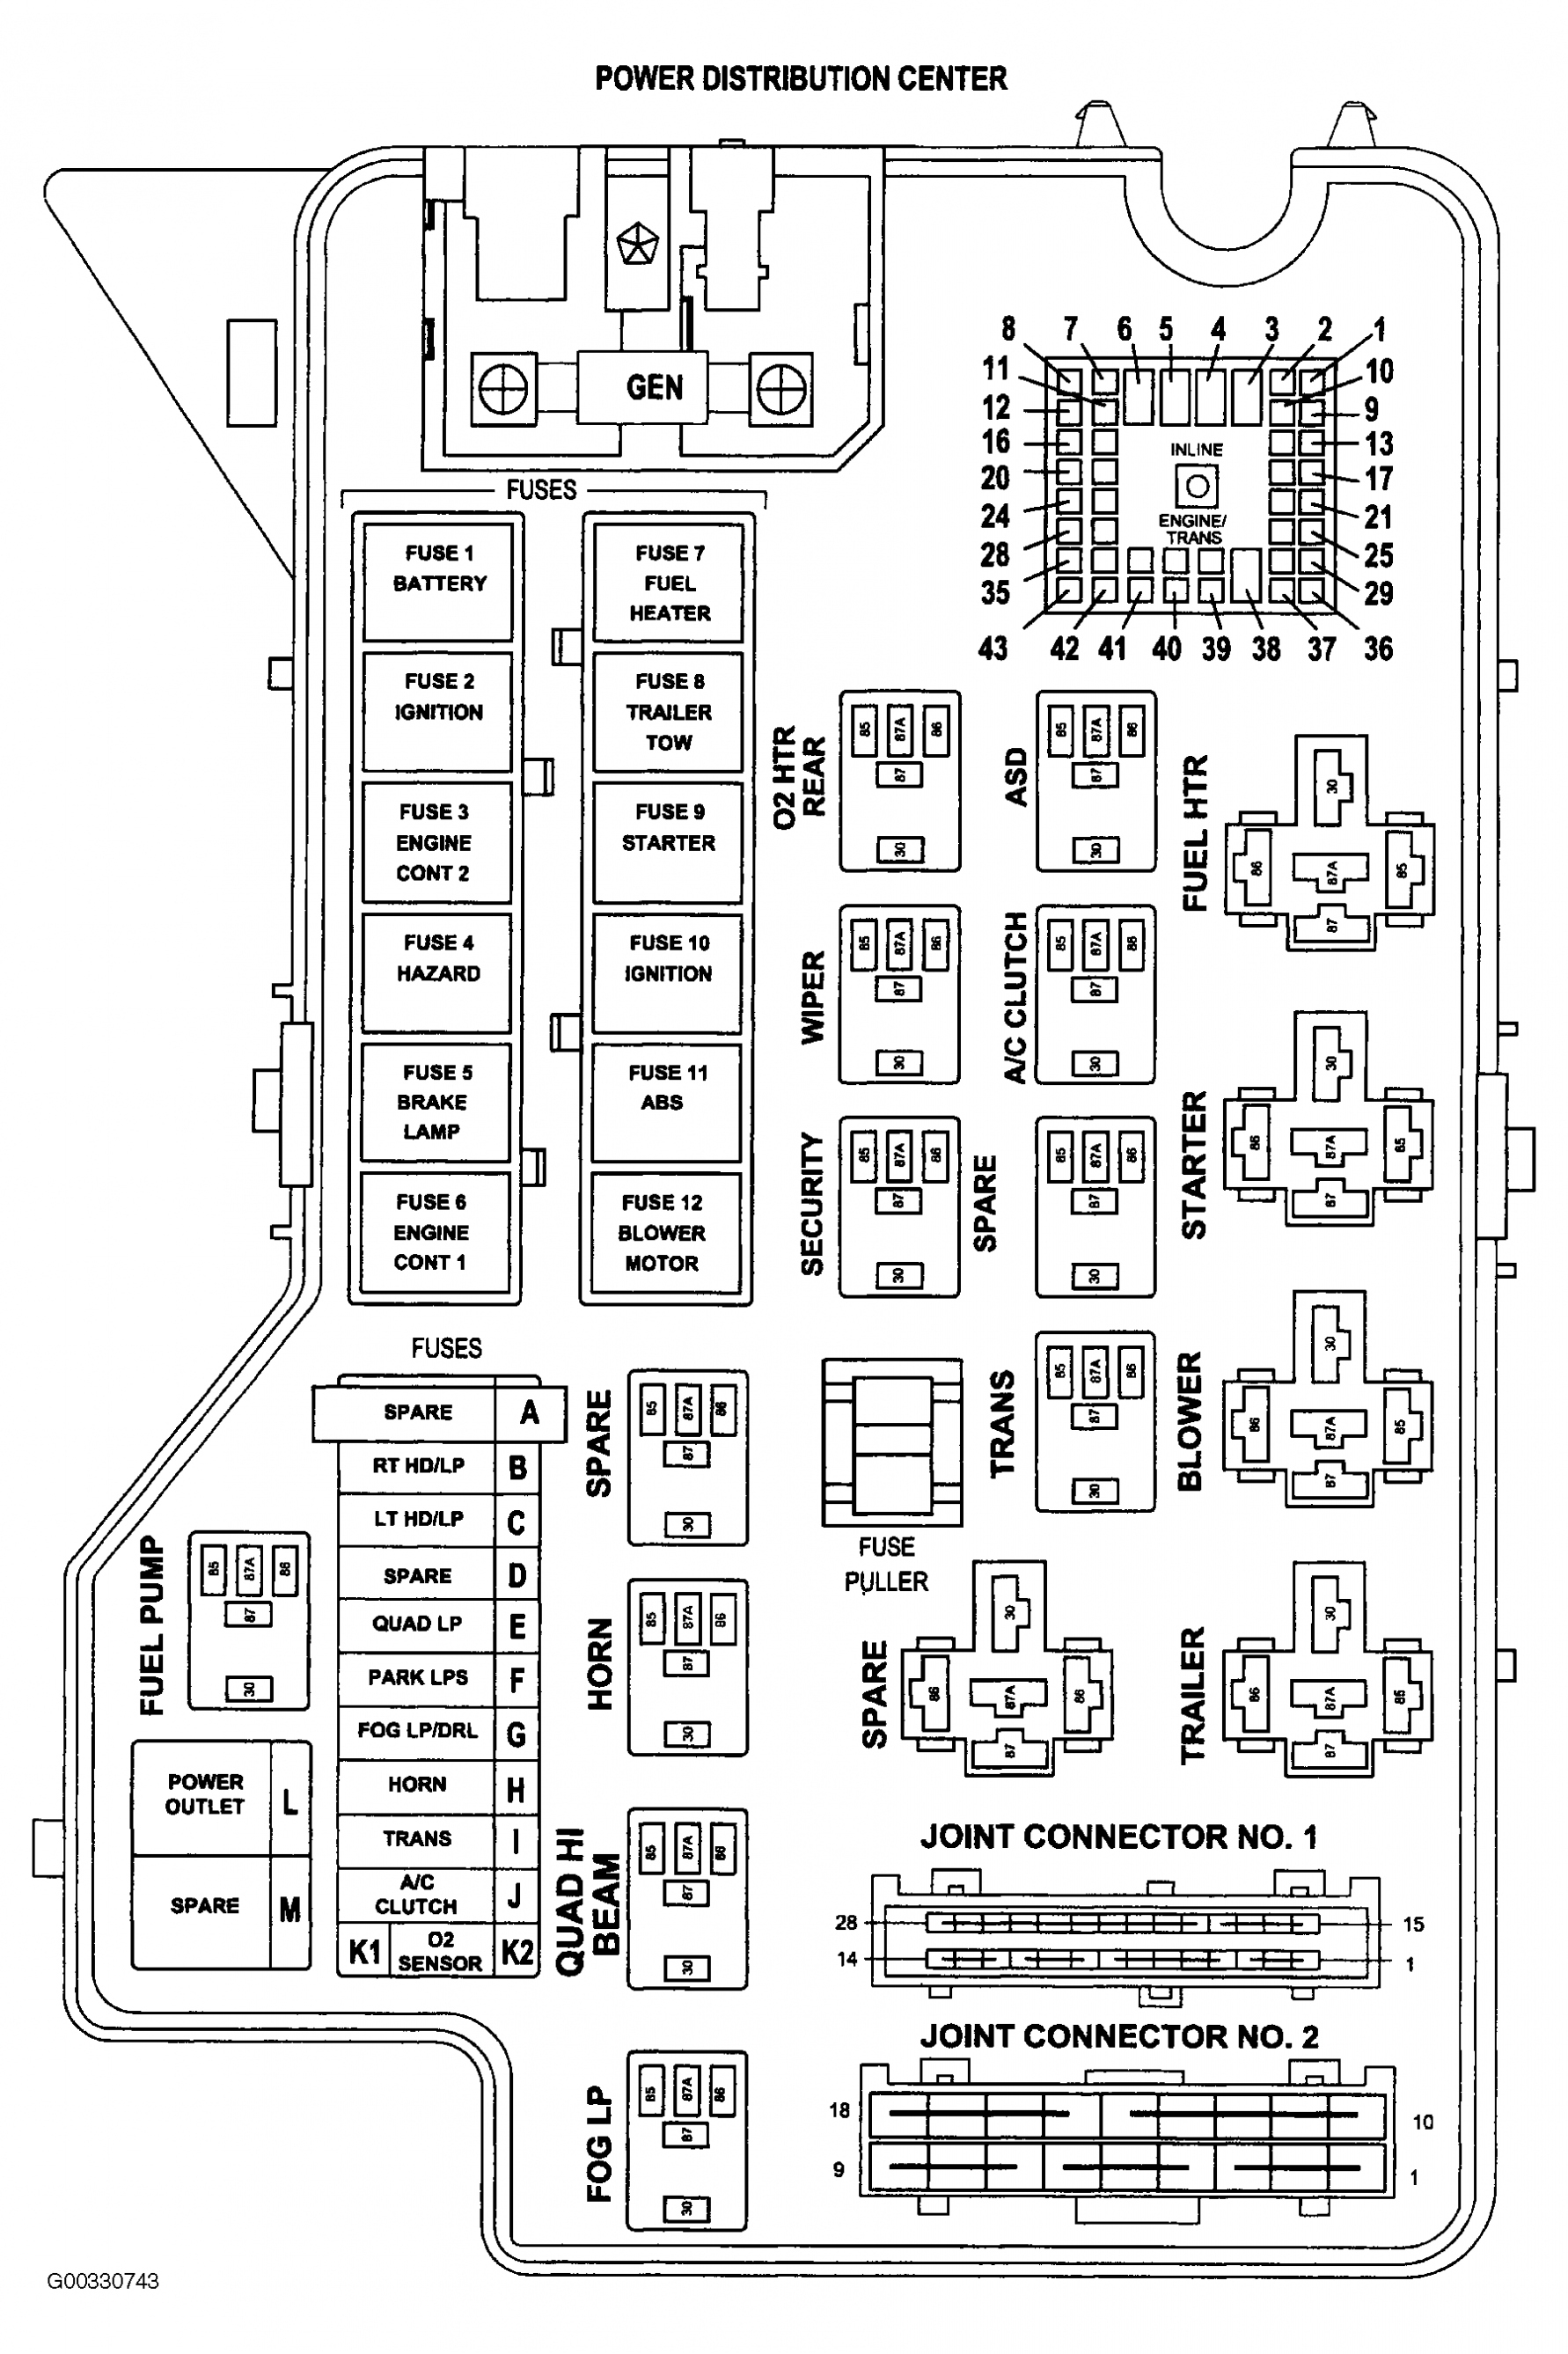 2002 Dodge Dakota Fuse Box Diagram | Wiring Diagram - 2002 Dodge Dakota Wiring Diagram